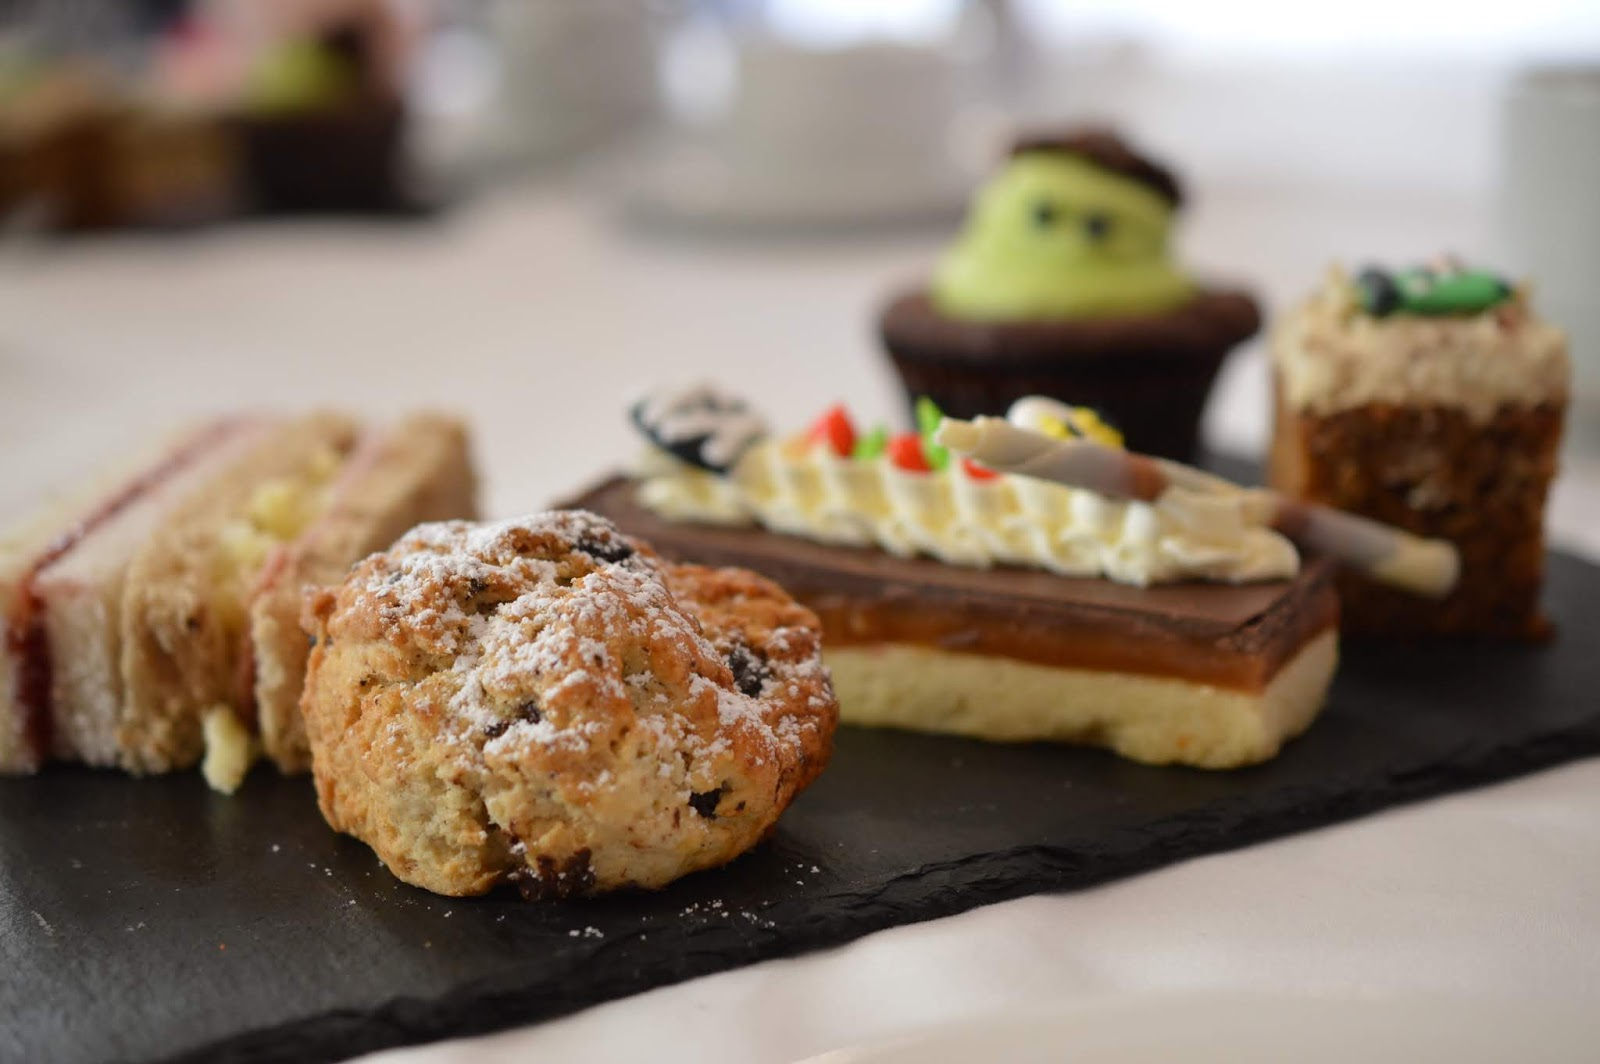 10 Reasons to Stay at Matfen Hall in Northumberland with Kids  - children's afternoon tea